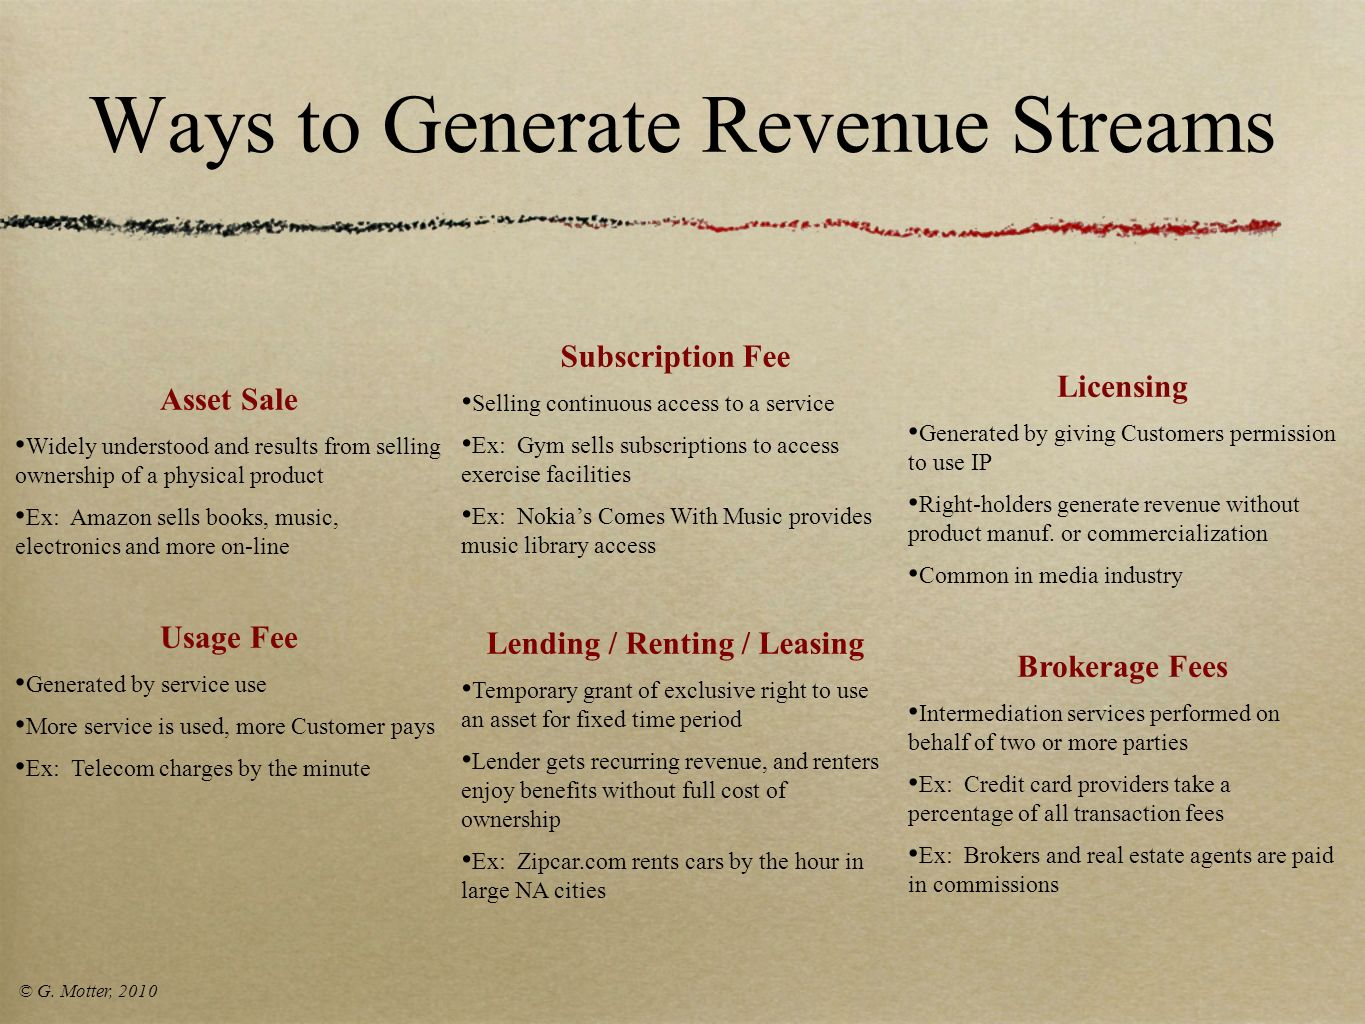 Ways to Generate Revenue Streams